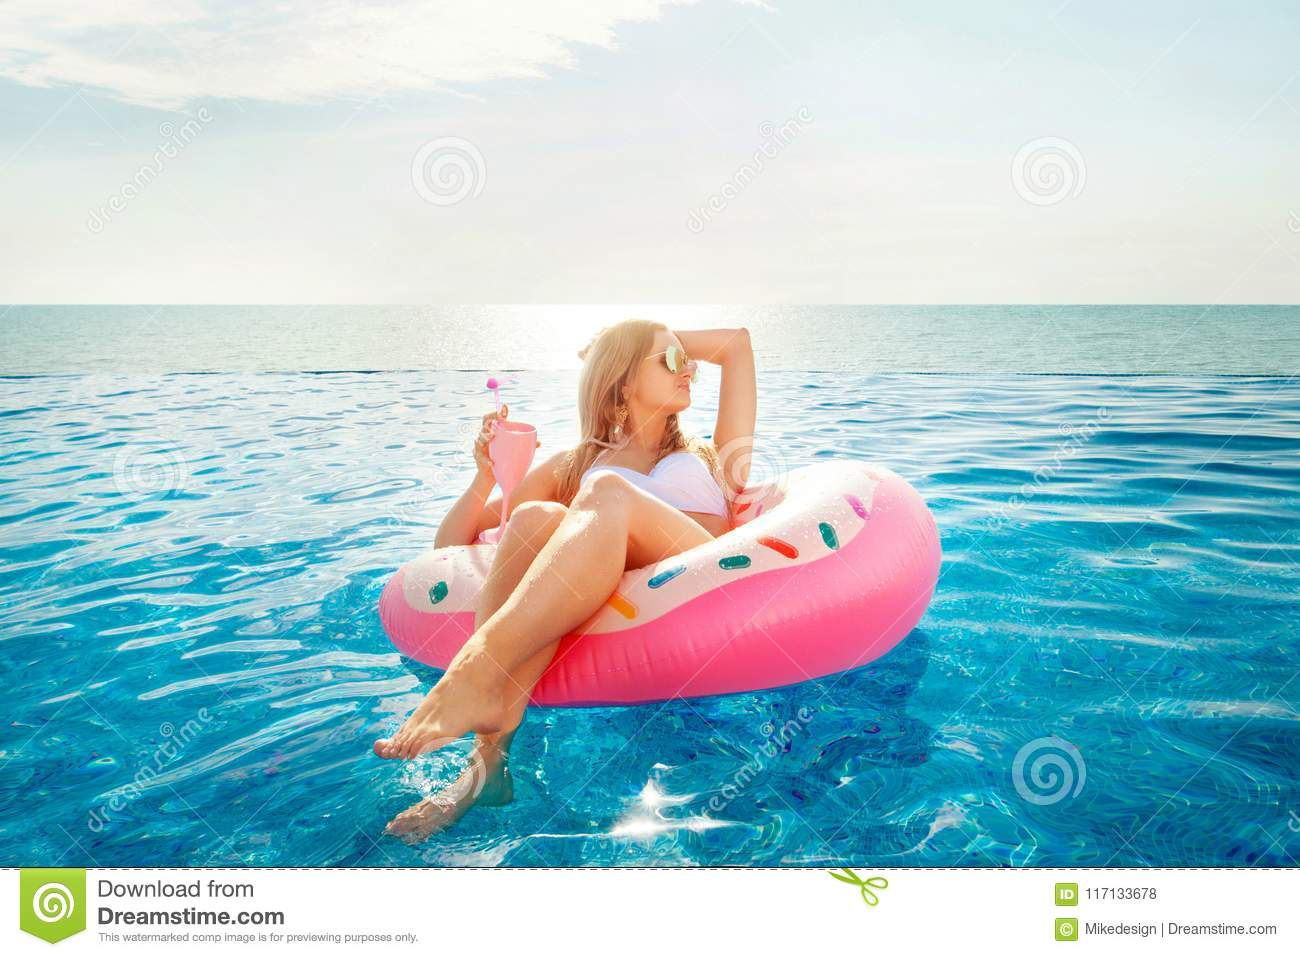 Summer Vacation. Woman in bikini on the inflatable donut mattress in the SPA swimming pool.